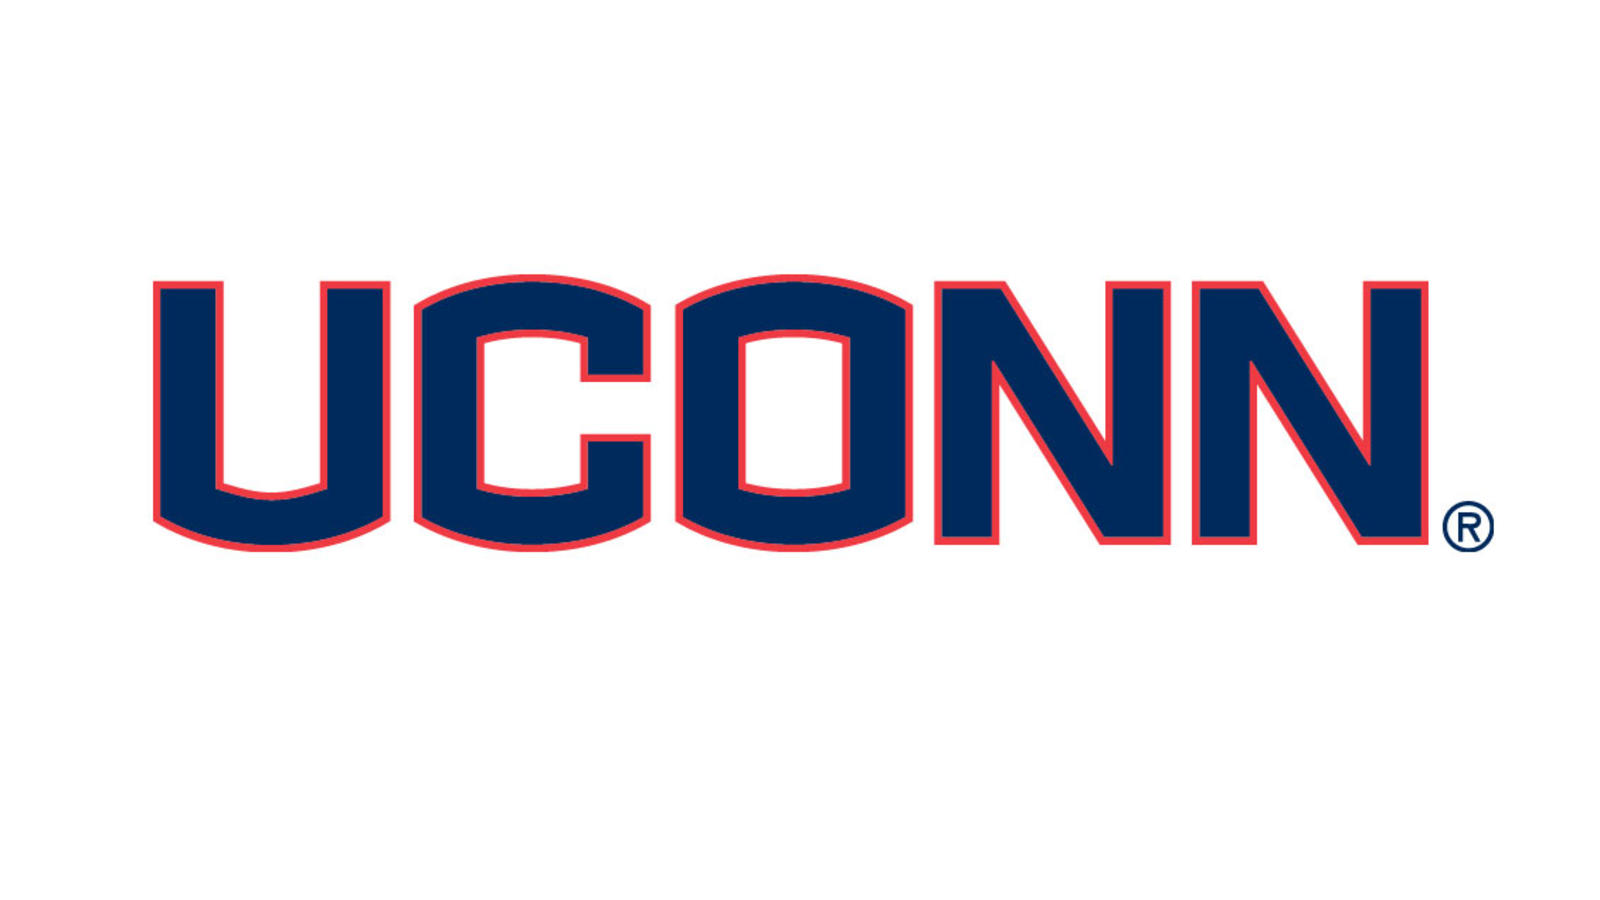 uconn updates visual identity and new uniforms for huskies nike news rh news nike com New UConn Husky Logo Basketball New UConn Husky Logo Basketball